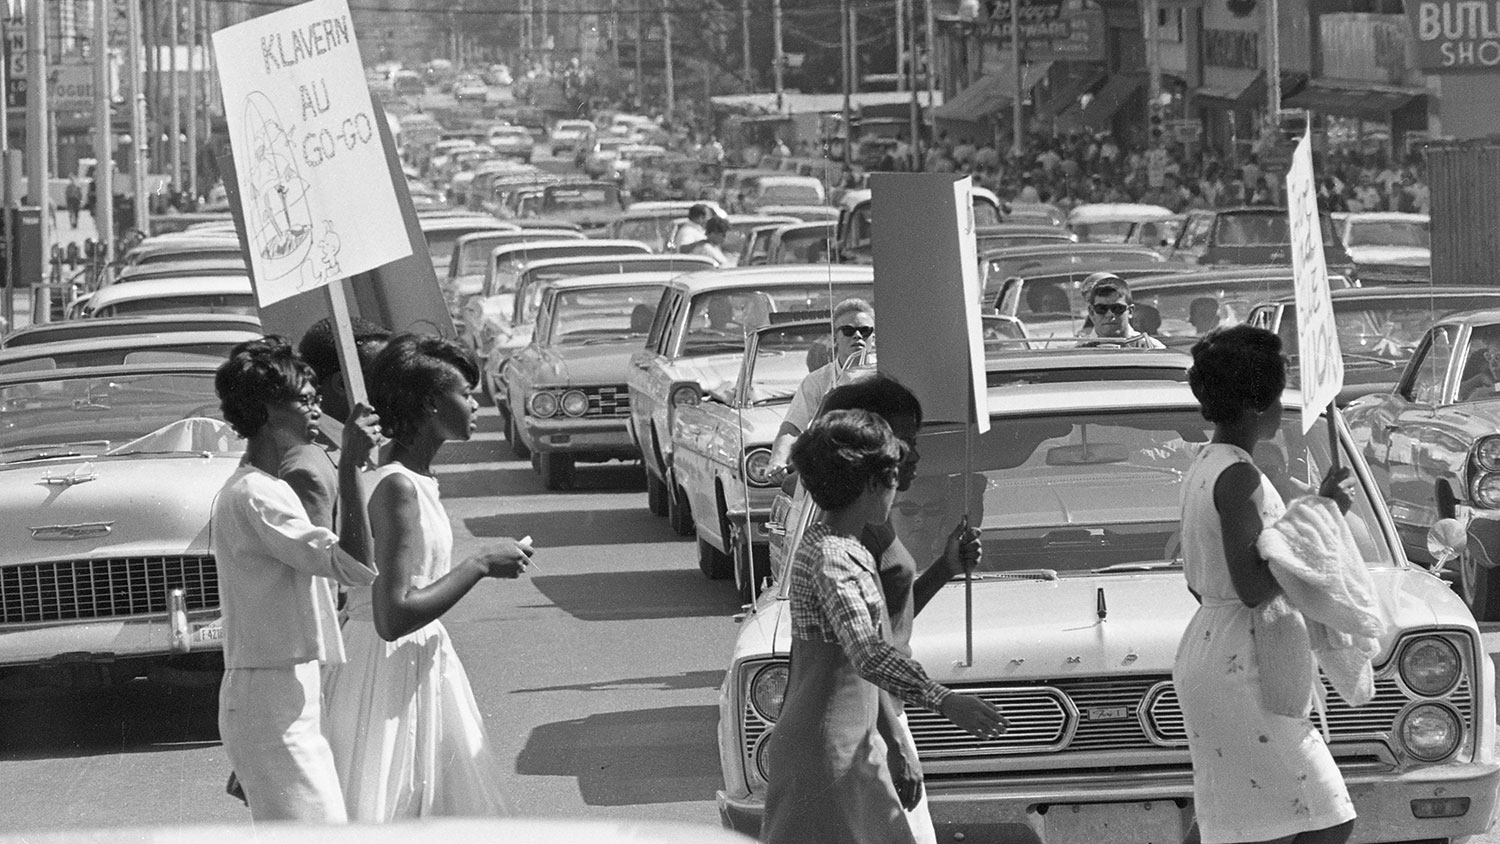 A protester crosses the street with a sign in this black and white photograph from the sixties.